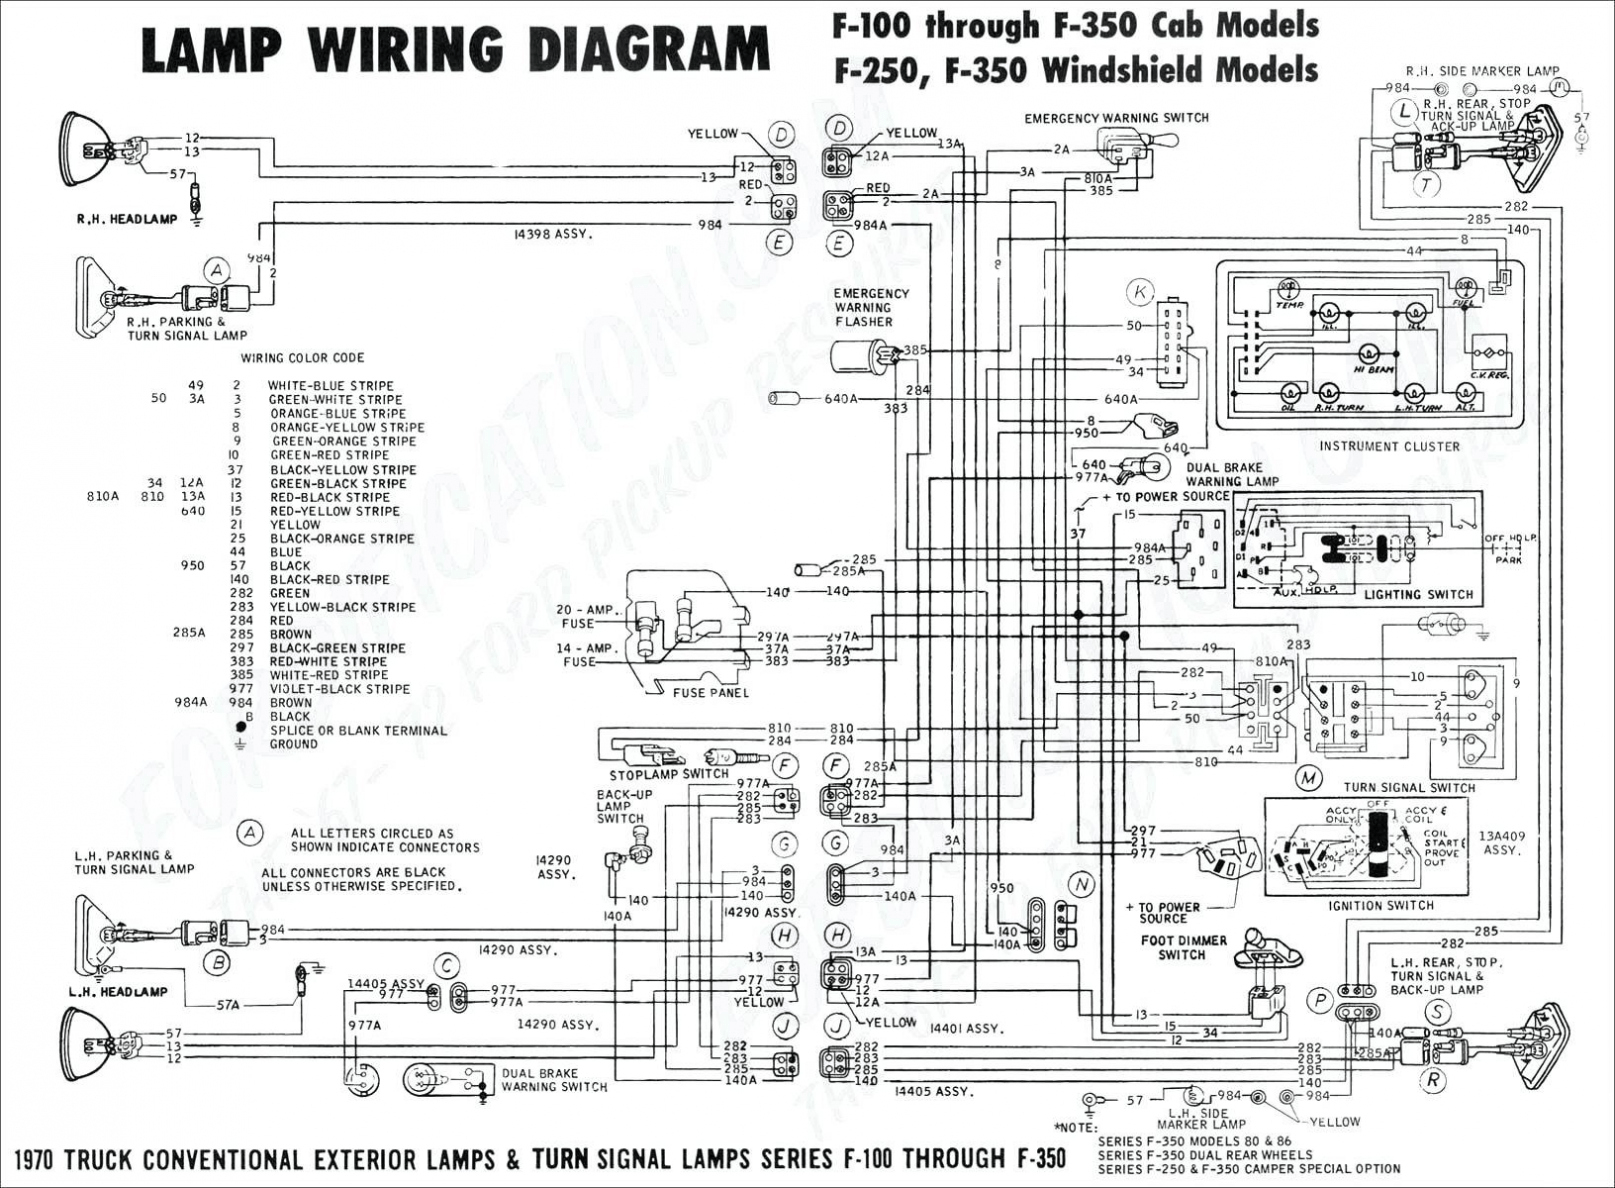 hight resolution of 1995 acura legend fuse diagram moreover engine for 2006 ford 5 4 2006 ford f 150 coil wiring diagram